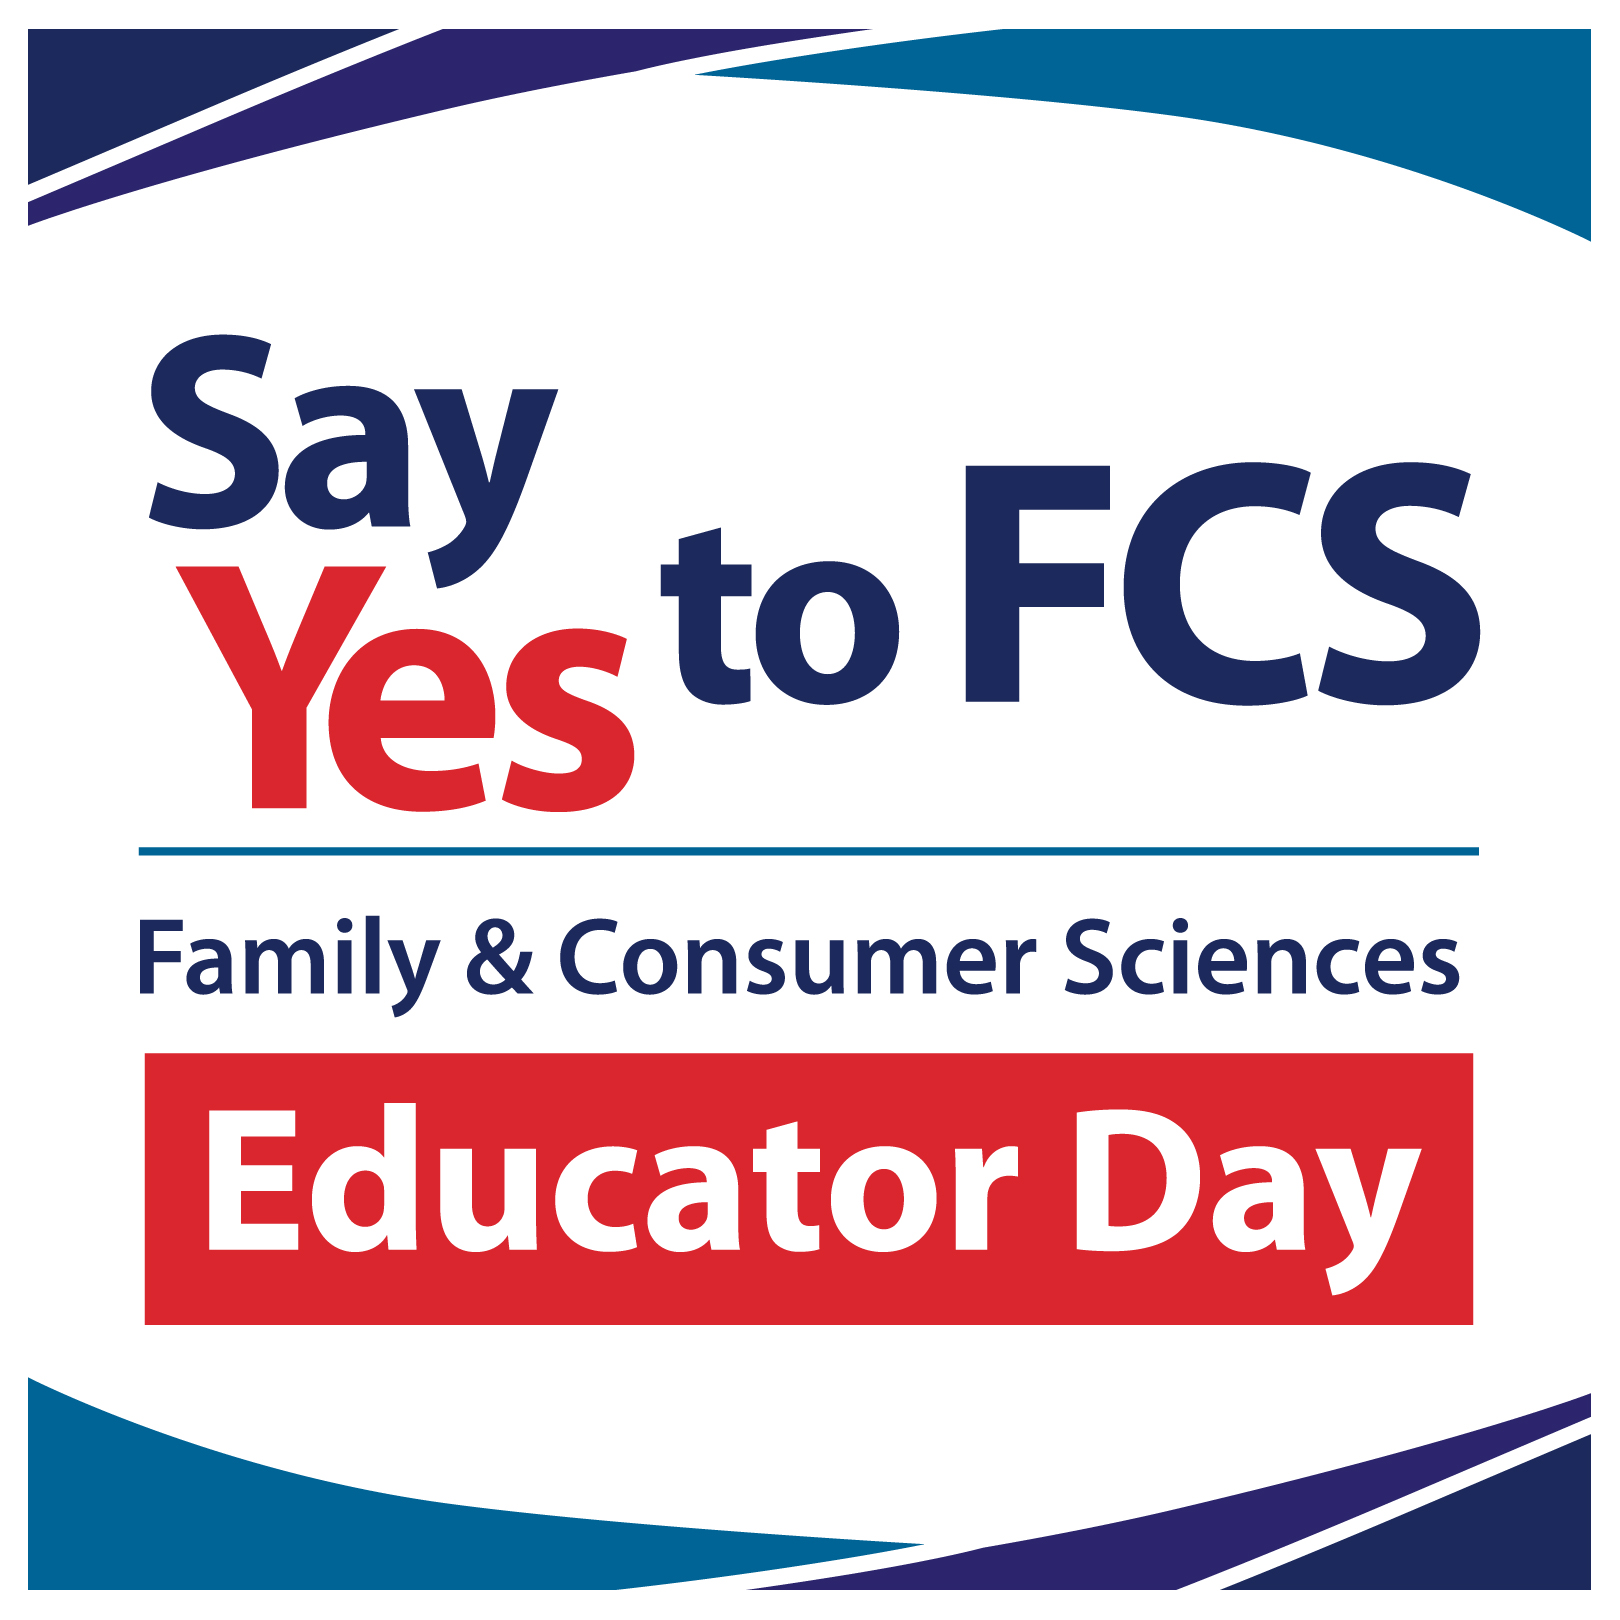 SayYesToFCS_EducatorDay_Logo.jpg